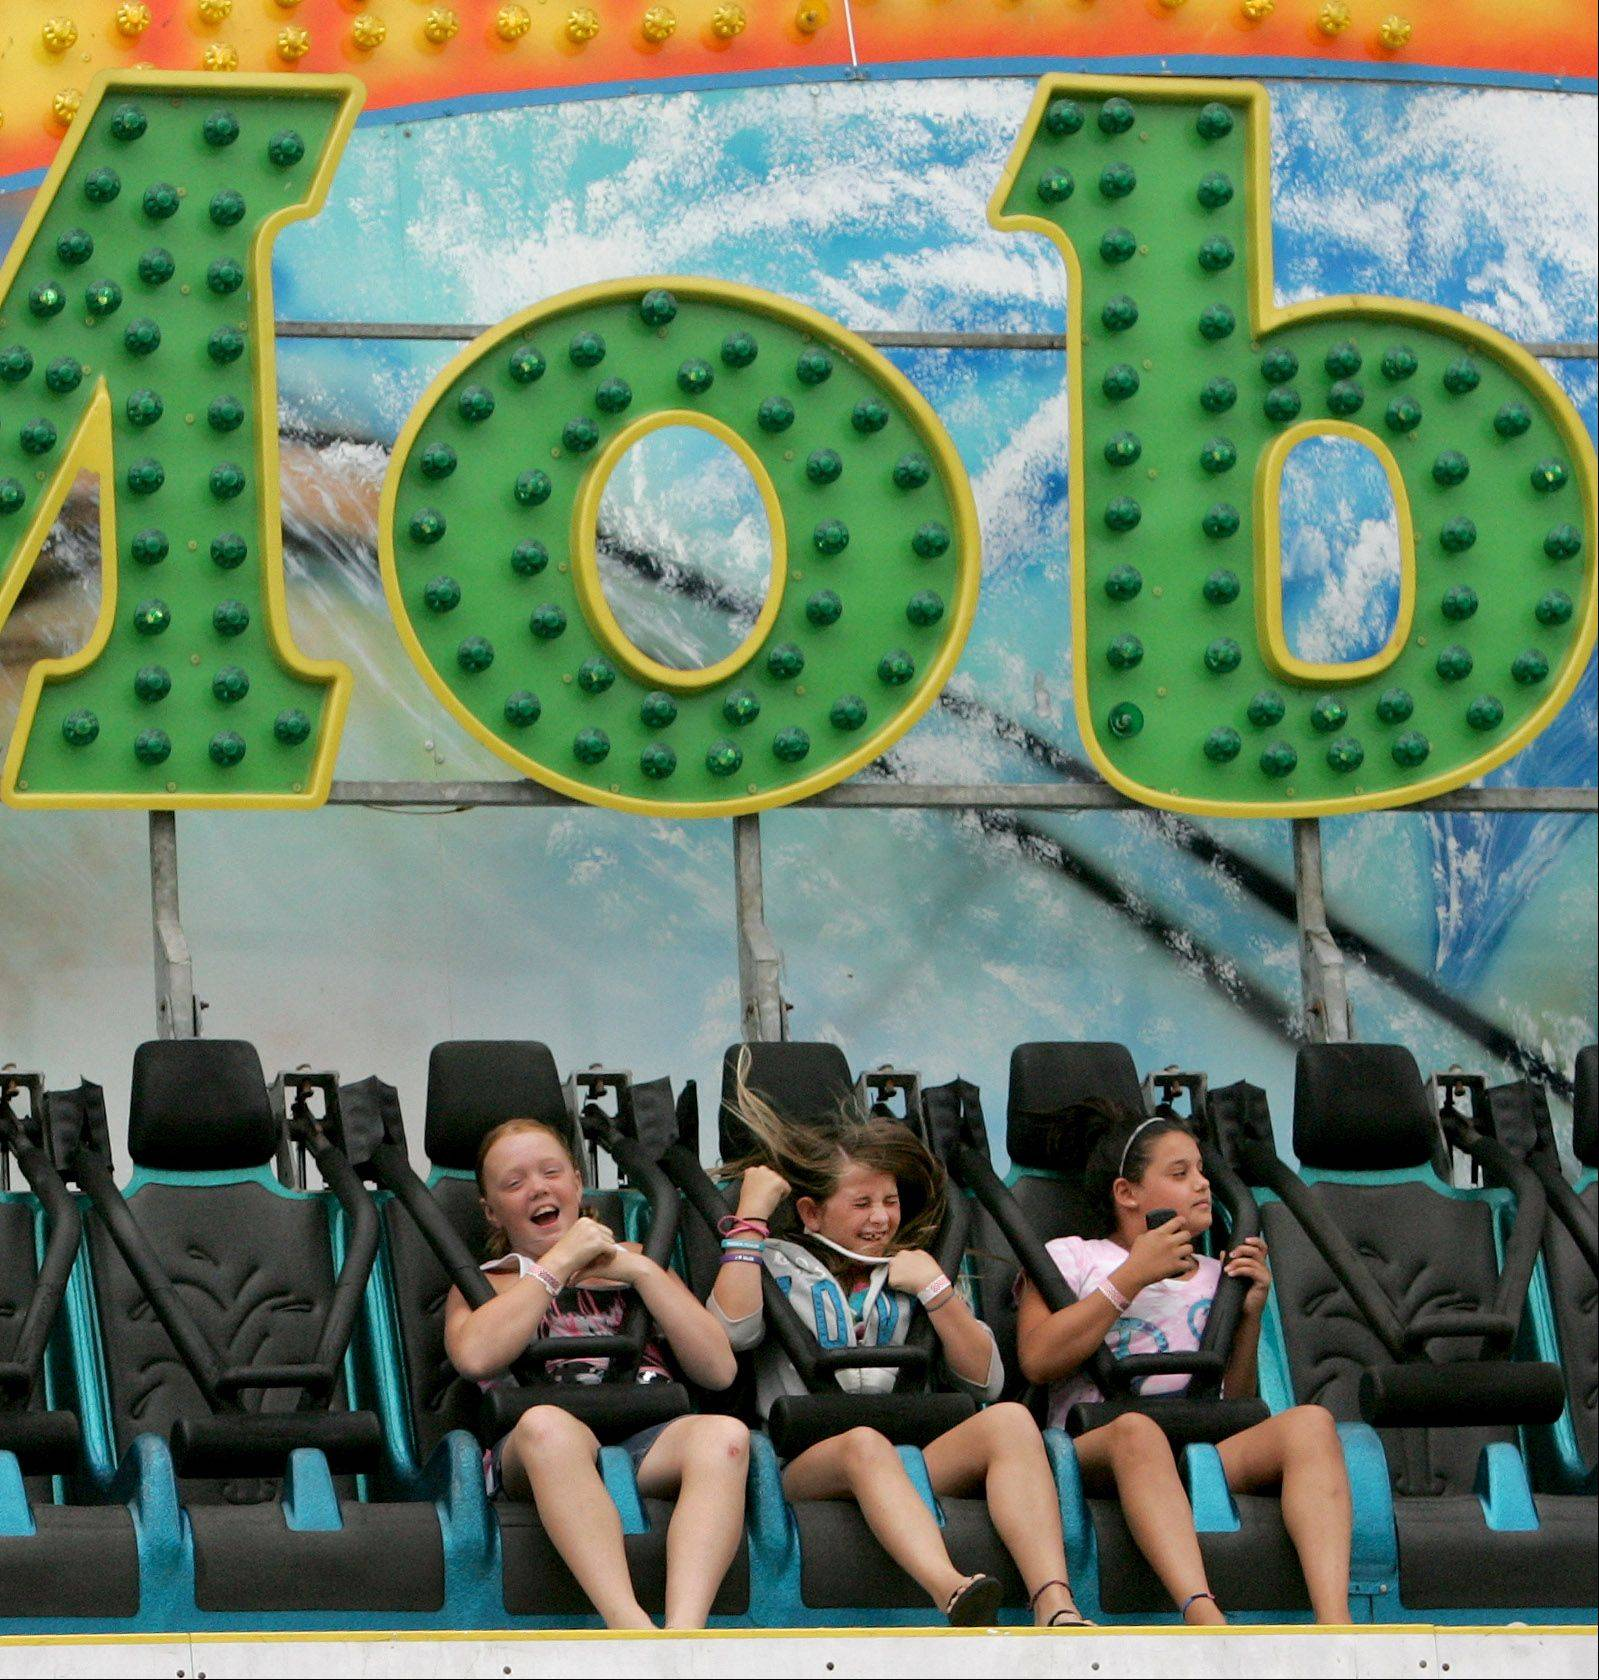 Left to right, Jessica Cox, 10, Erin Miller, 11 and Annamarie Petrella, 11, of Wood Dale, take a turn on the Moby Dick carnival ride during Wood Dale Prairie Fest at Town Center on Sunday.